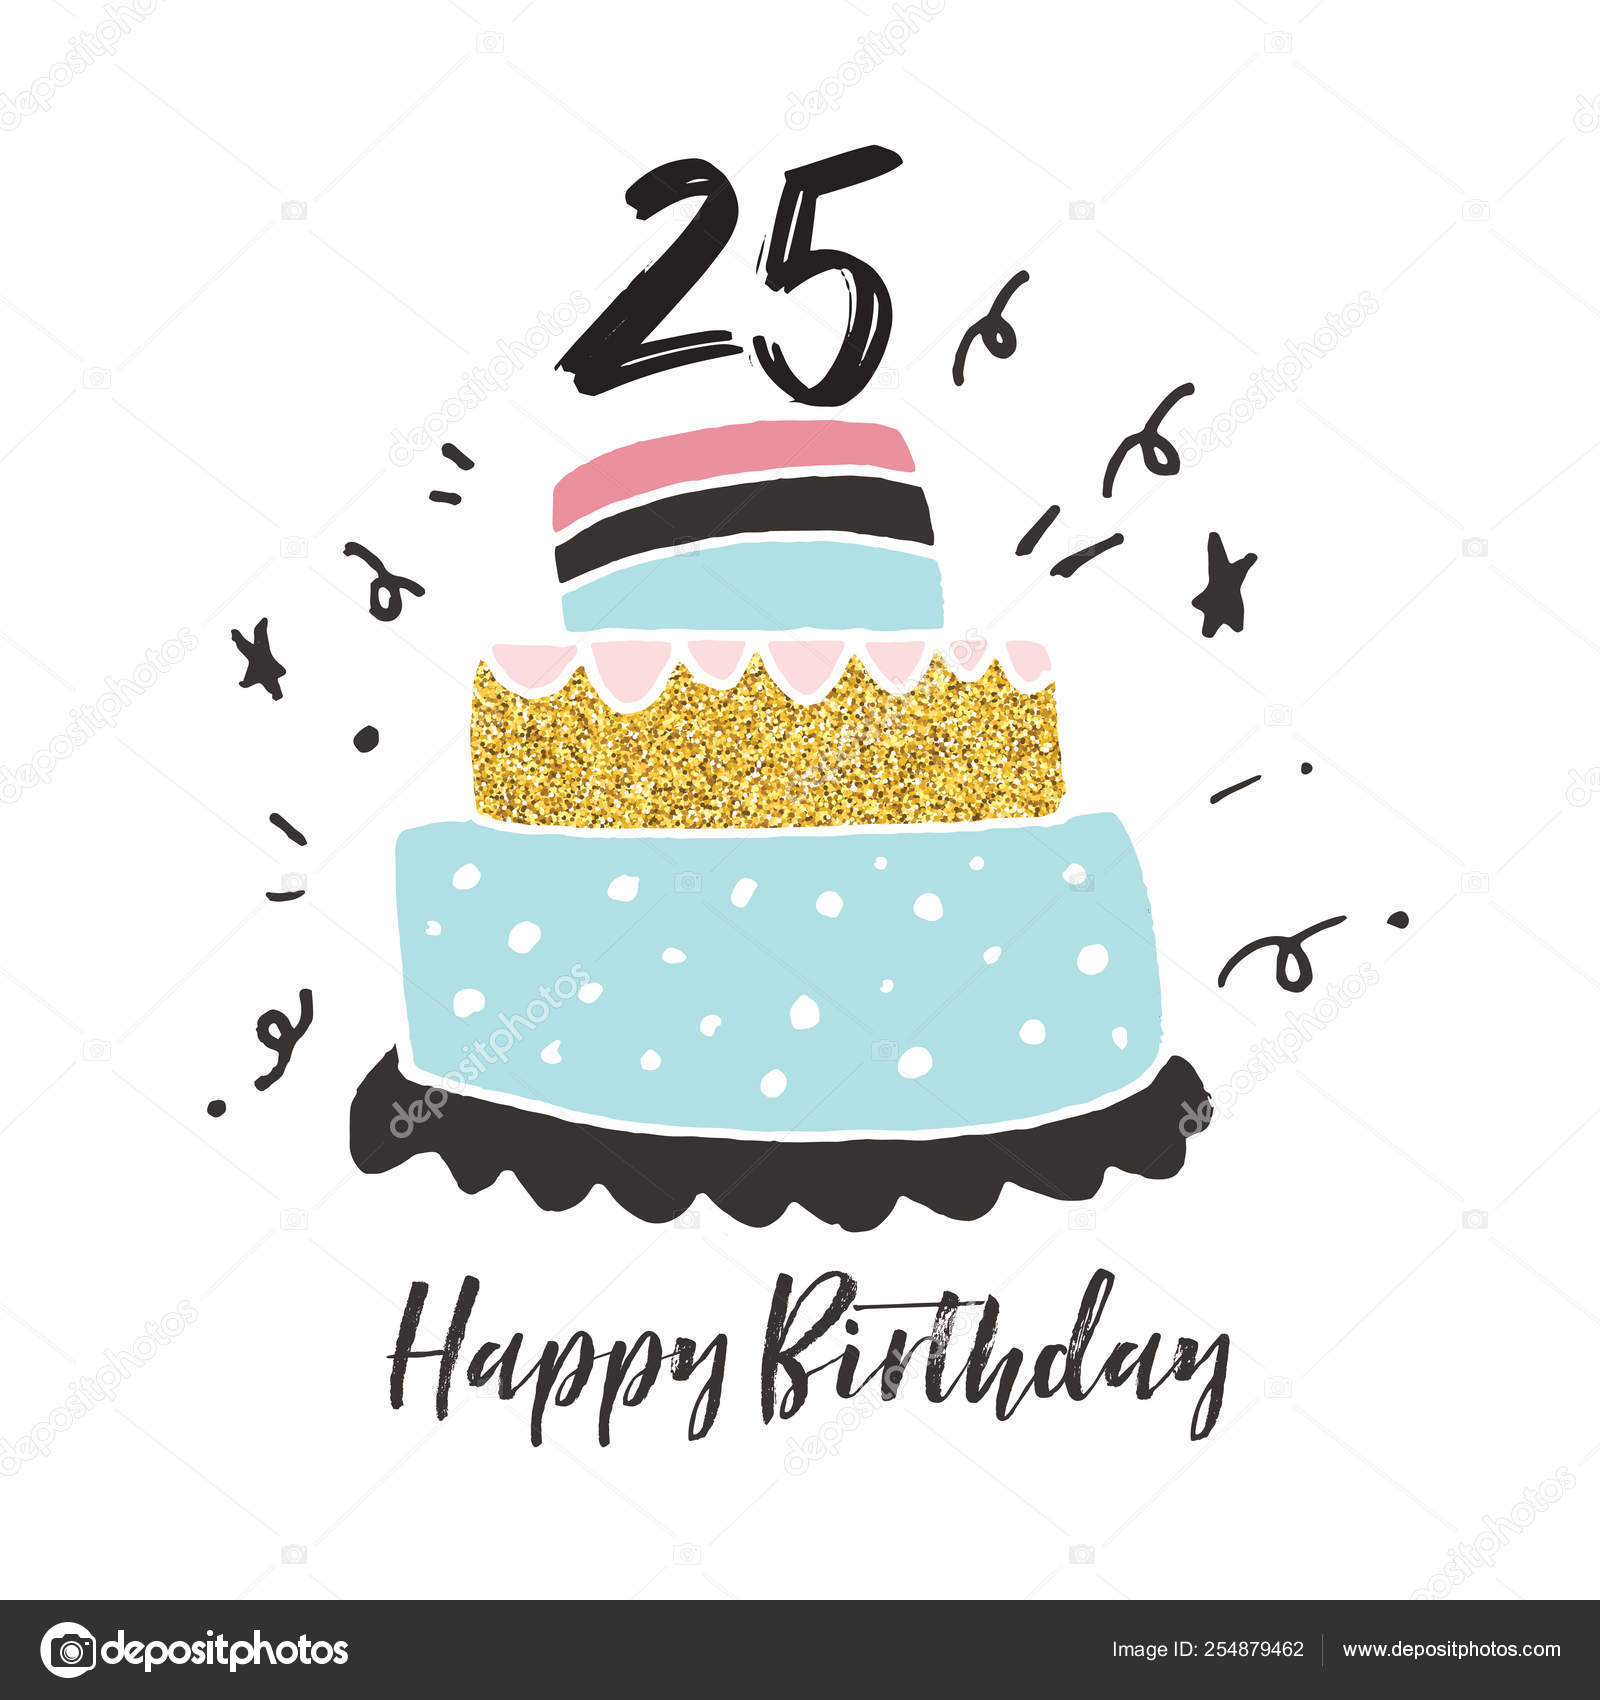 Stupendous 25Th Birthday Hand Drawn Cake Birthday Card Stock Vector Funny Birthday Cards Online Alyptdamsfinfo